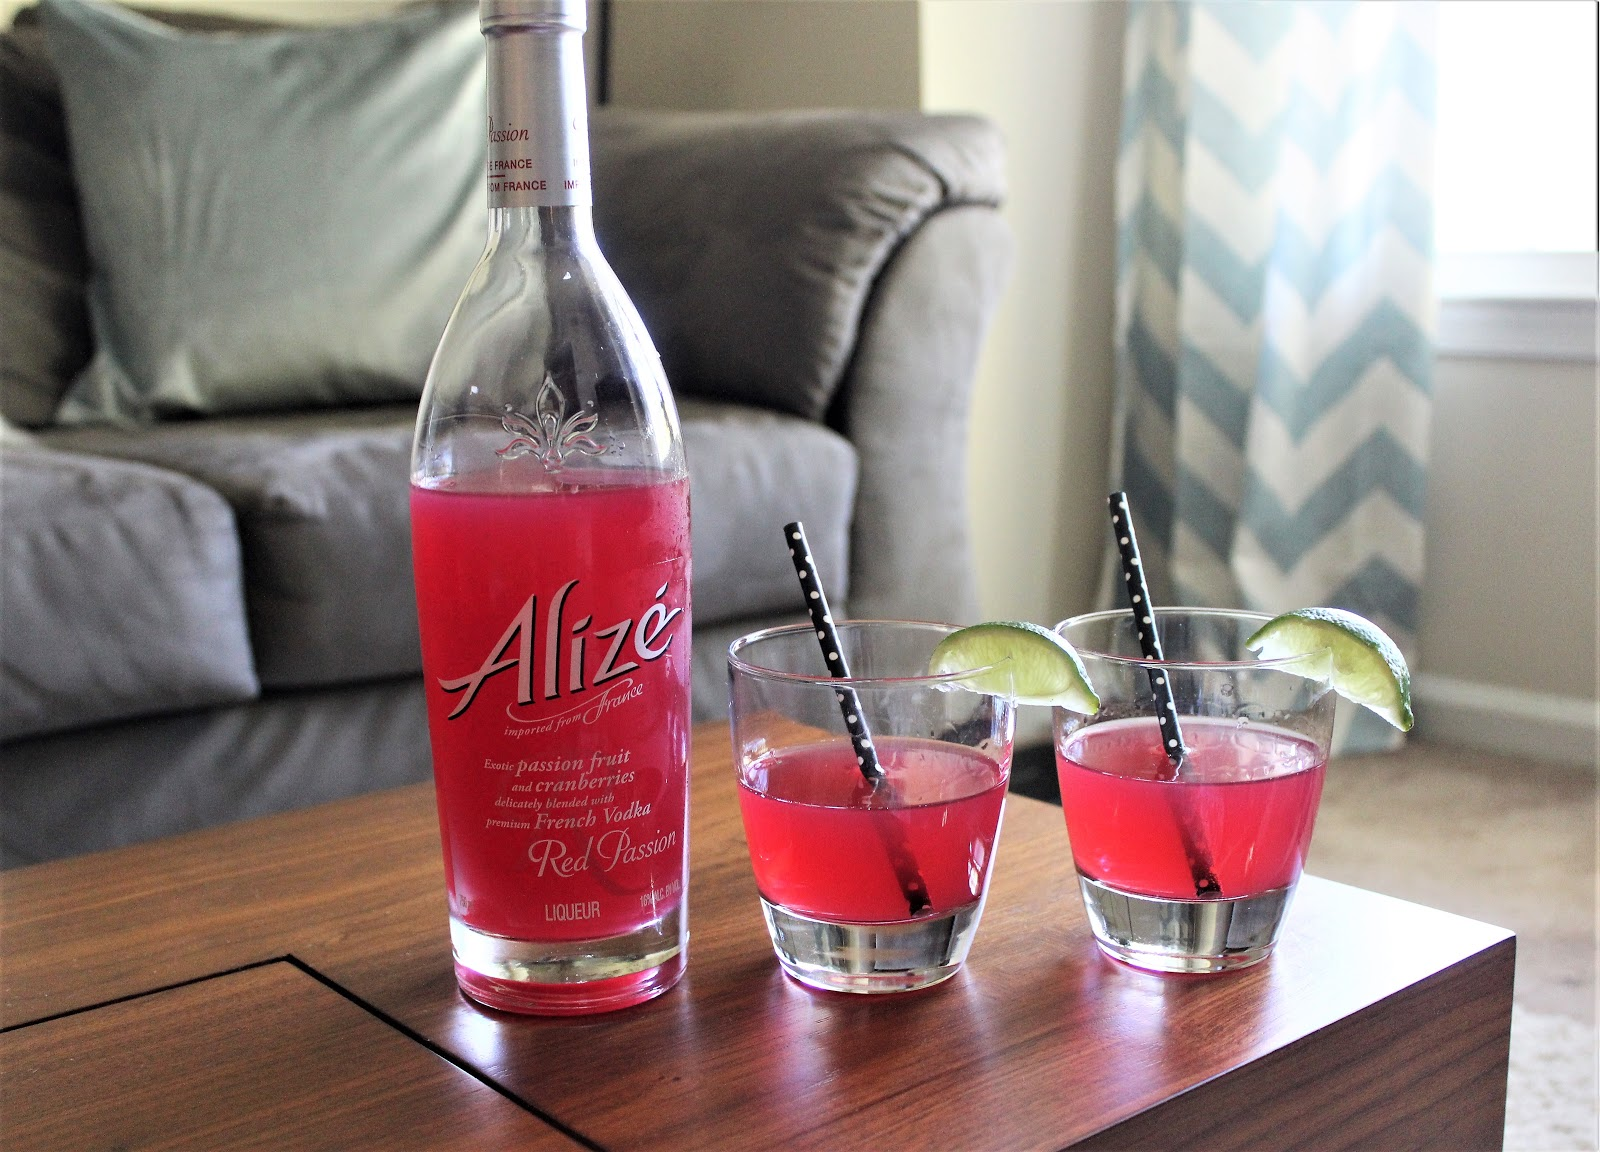 Create Your Own Fabulous Red Carpet at Home with Alizé